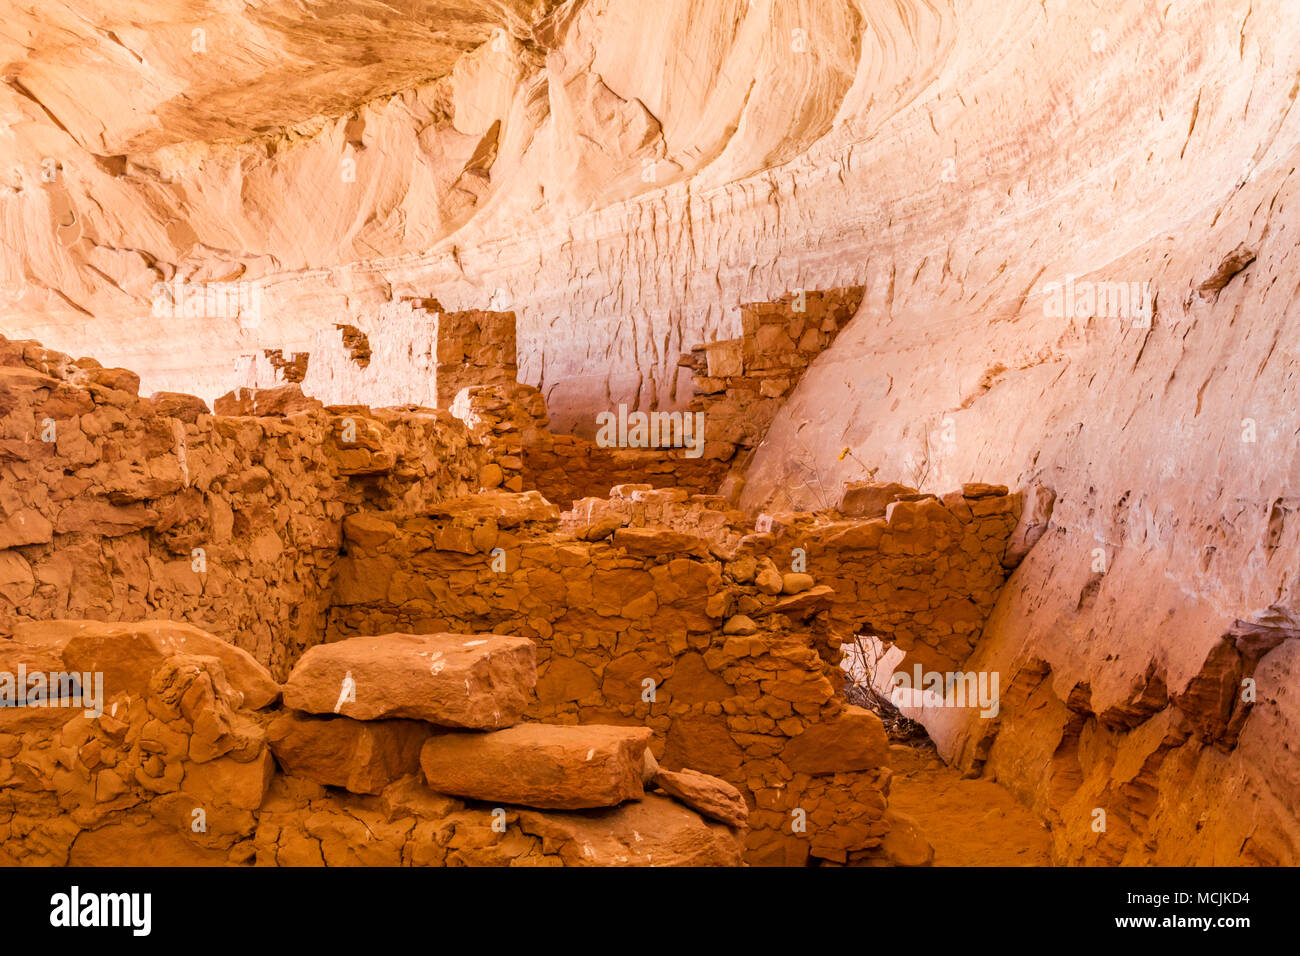 17 or 16 Room Ruin, an Ancestral Puebloan ruin in a north facing alcove along the San Juan River near Bluff, Utah. Stock Photo